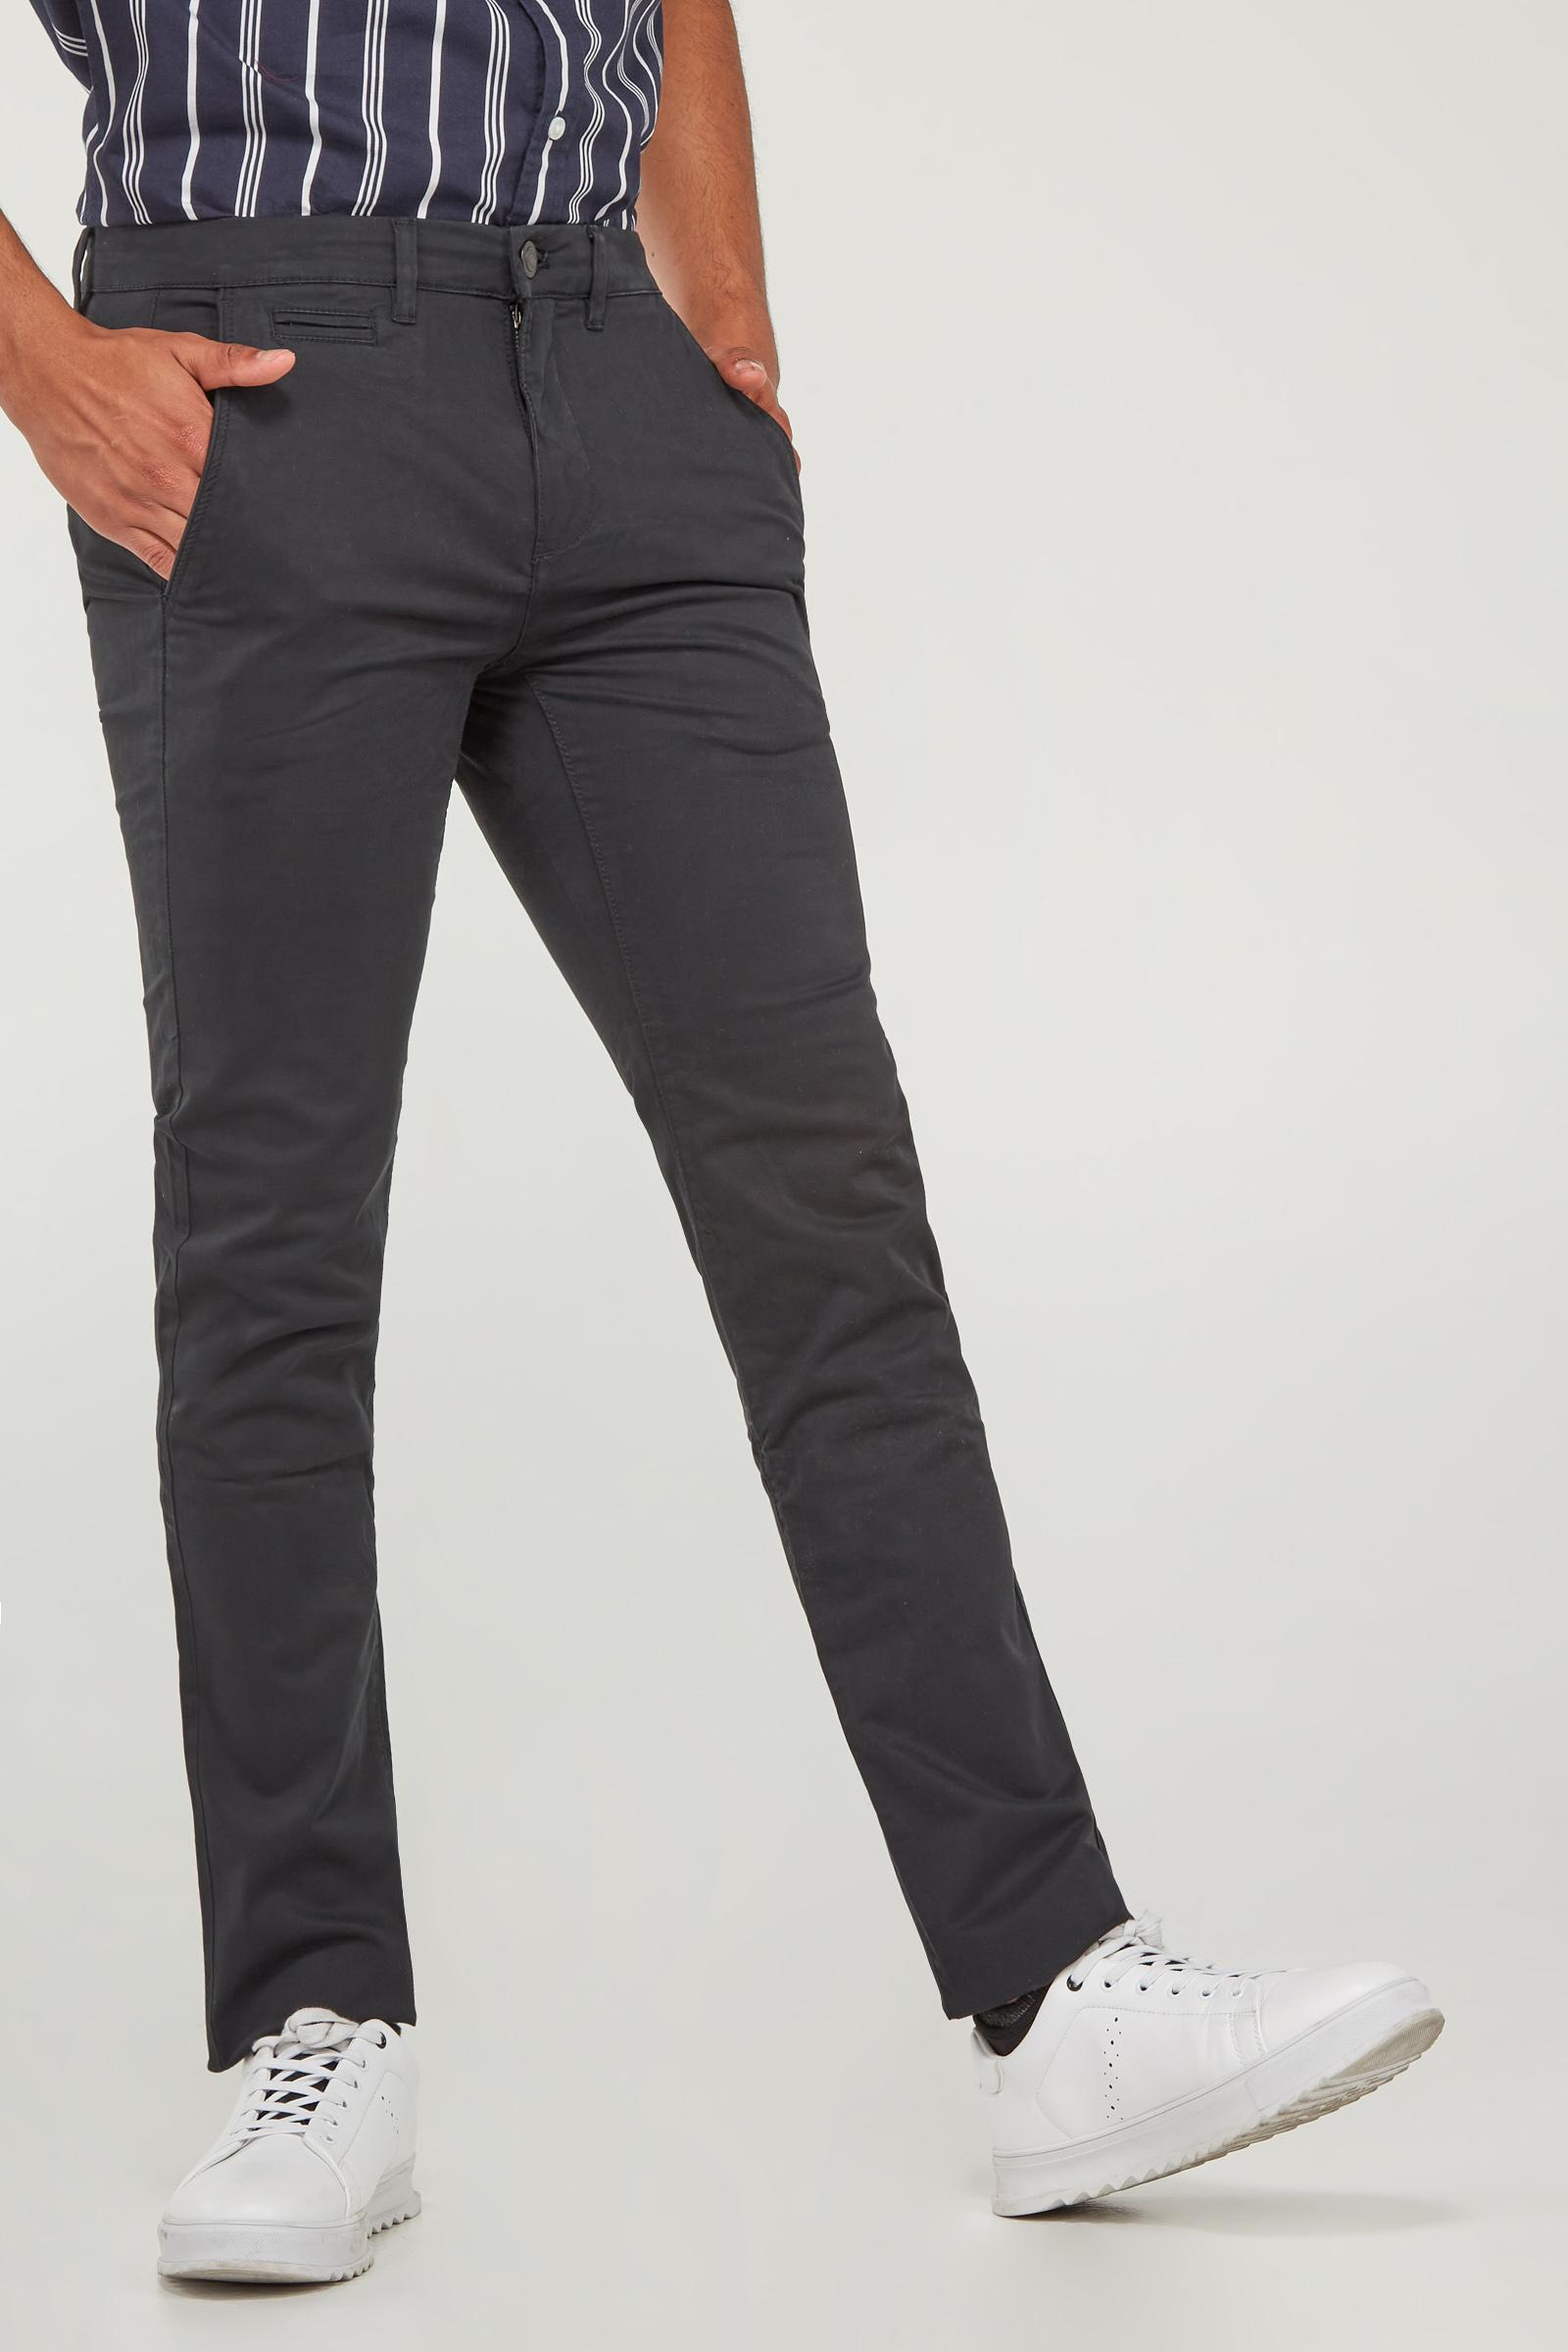 KOAJ-PANTALON KOAJ CHINO SUPER SLIM 6 4/19